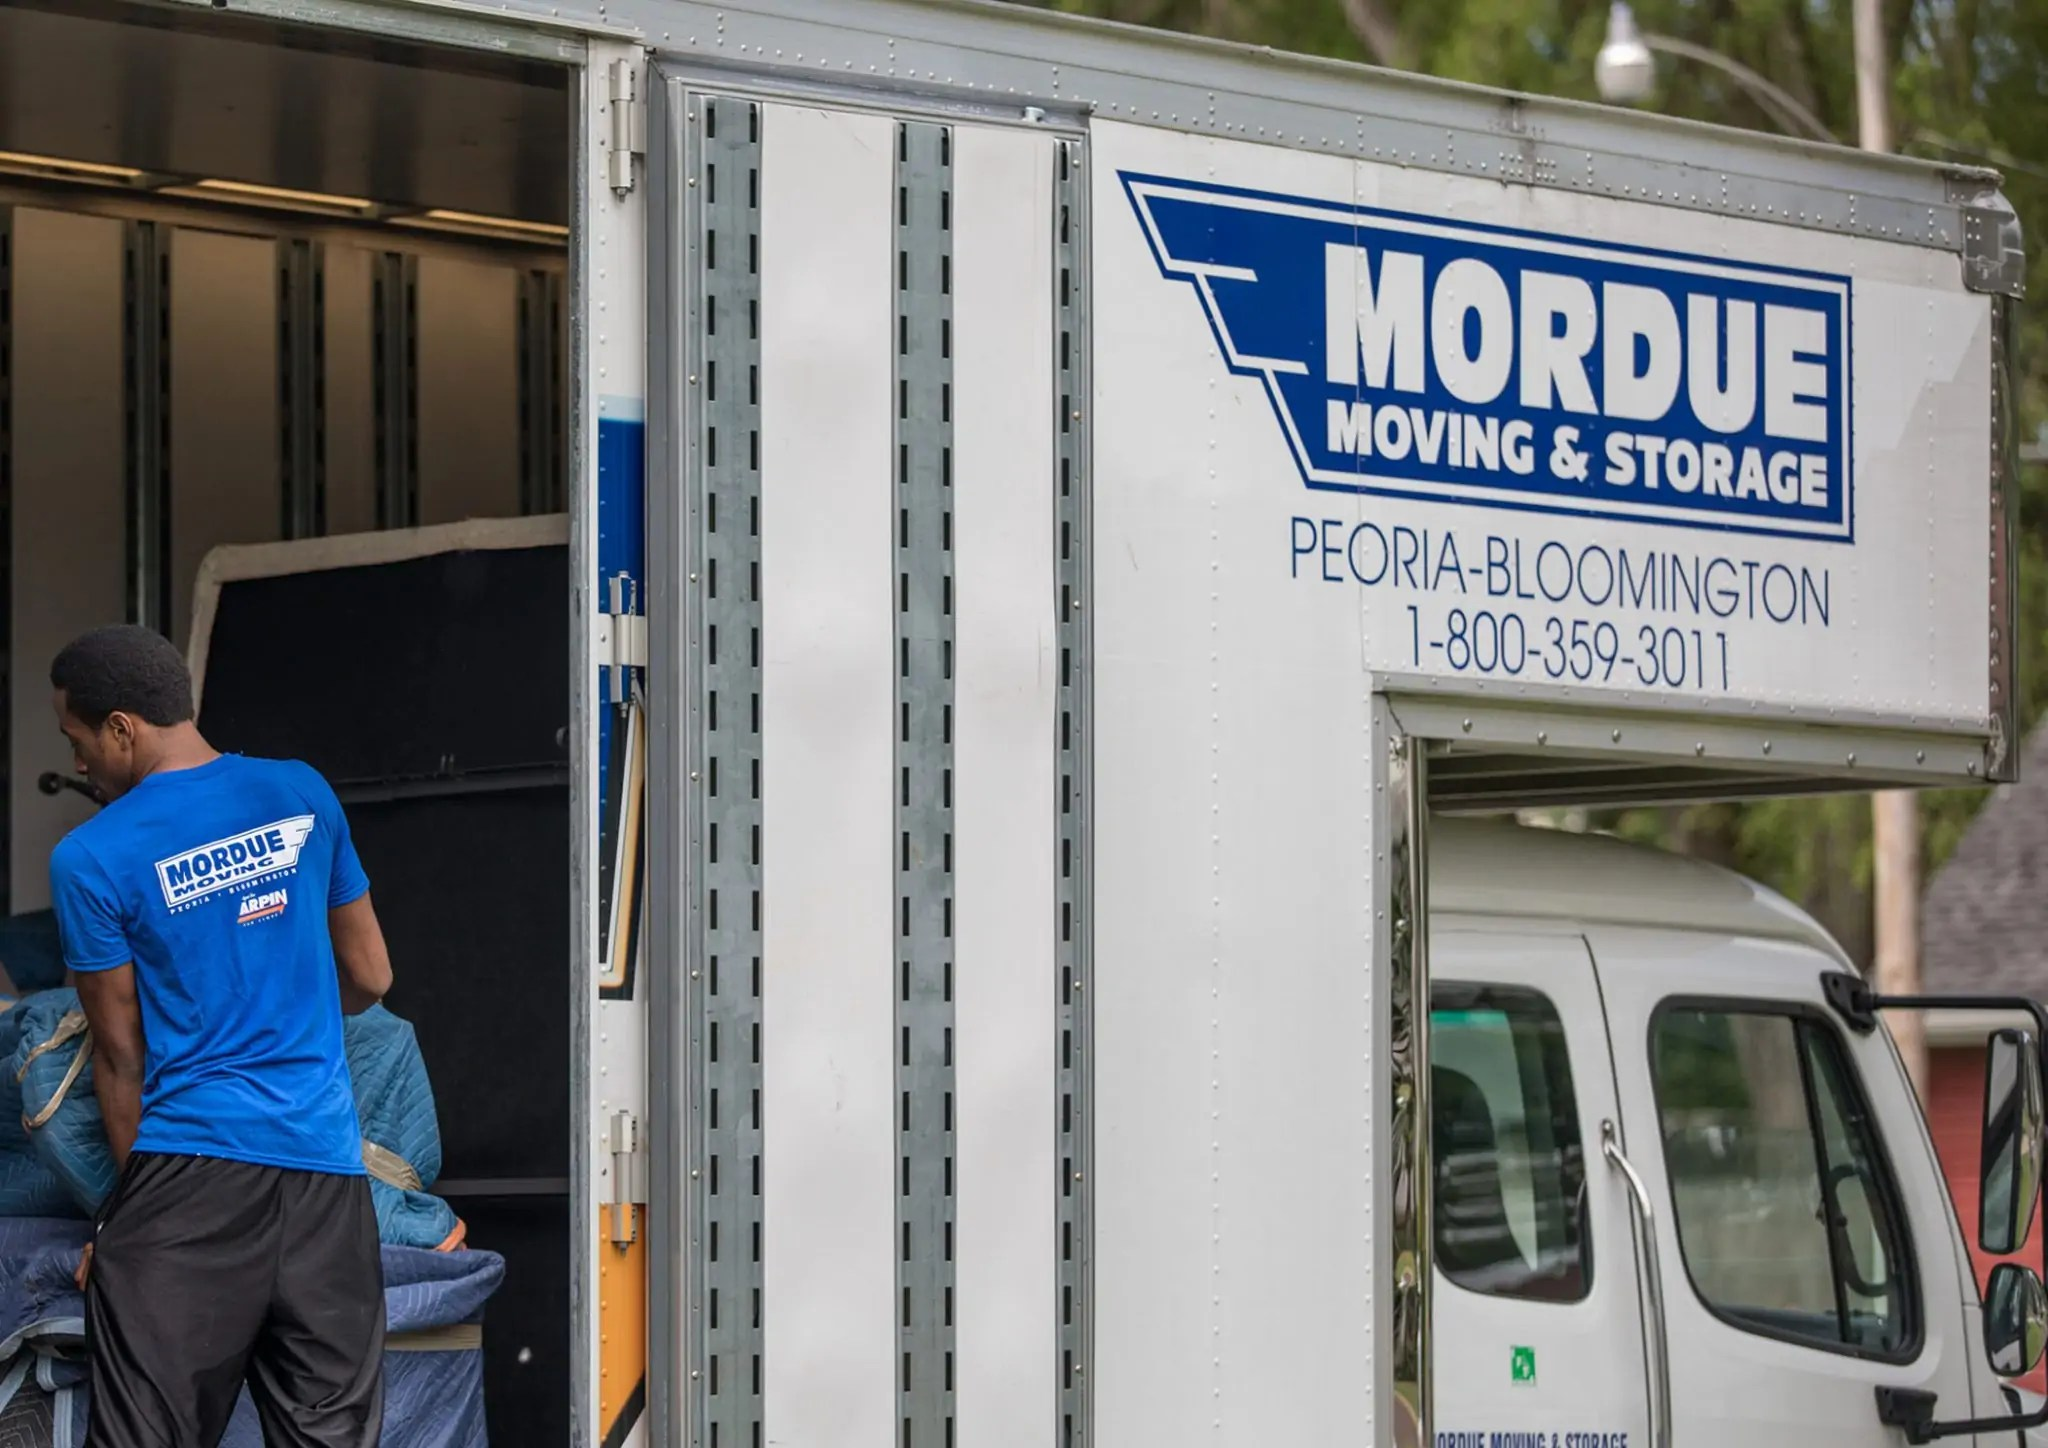 Peoria Storage Home Mordue Moving Storage